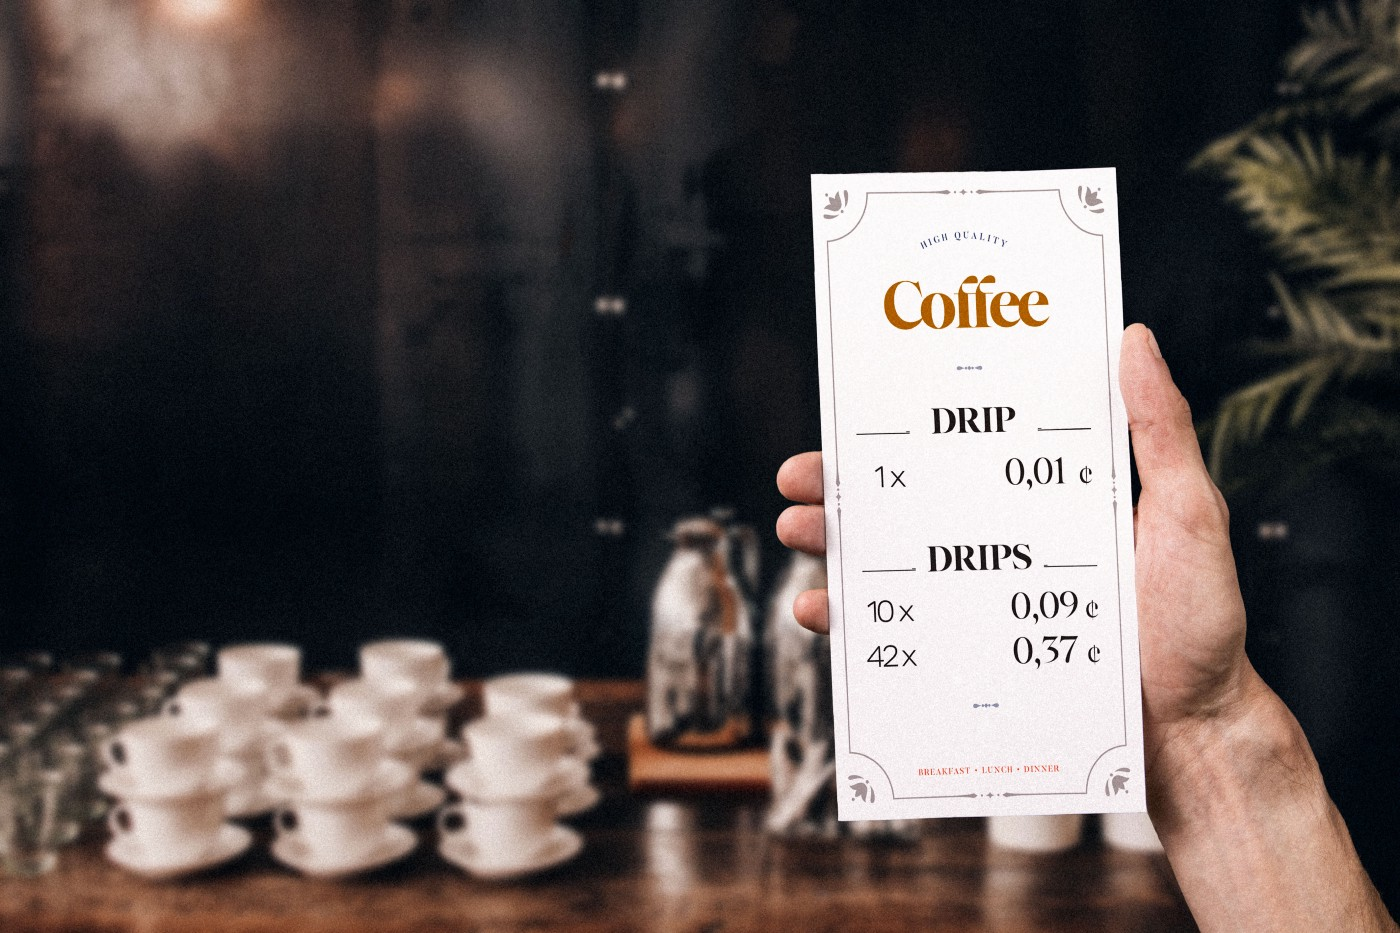 A menu from a coffee bar. One drip of coffee for 0,01ct. 10 drips for 0,09ct.